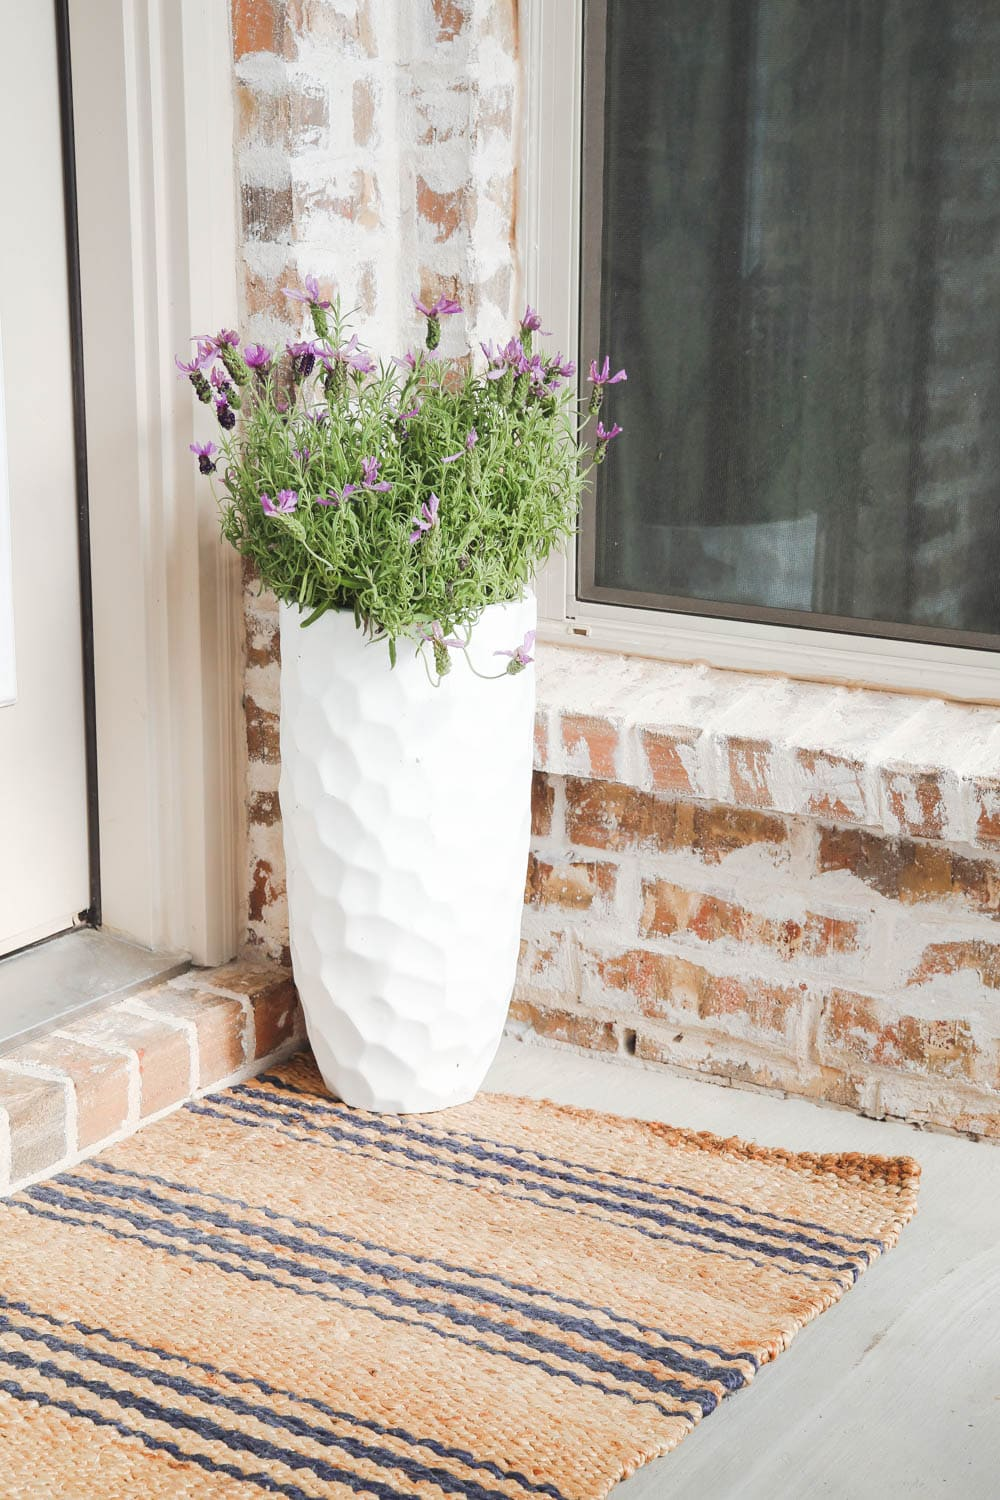 Add planters to your patio to help refresh your outdoor decor. #outdoordecor #patio #summerdecor #ABlissfulNest